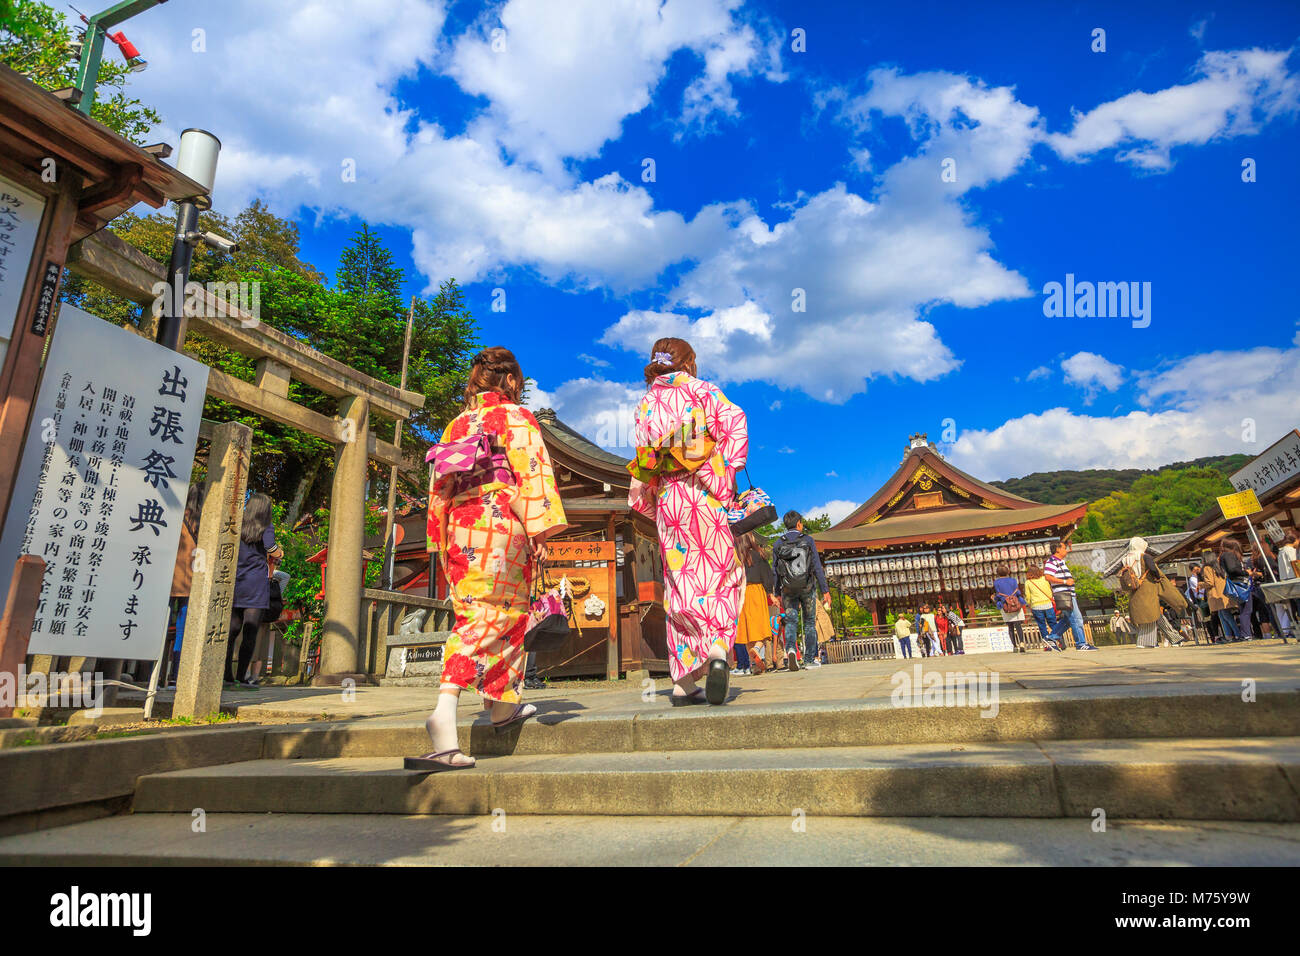 Kyoto, Japan - April 24, 2017: Japanese women in kimono visit Yasaka Shrine in spring season. Gion Shrine is one - Stock Image